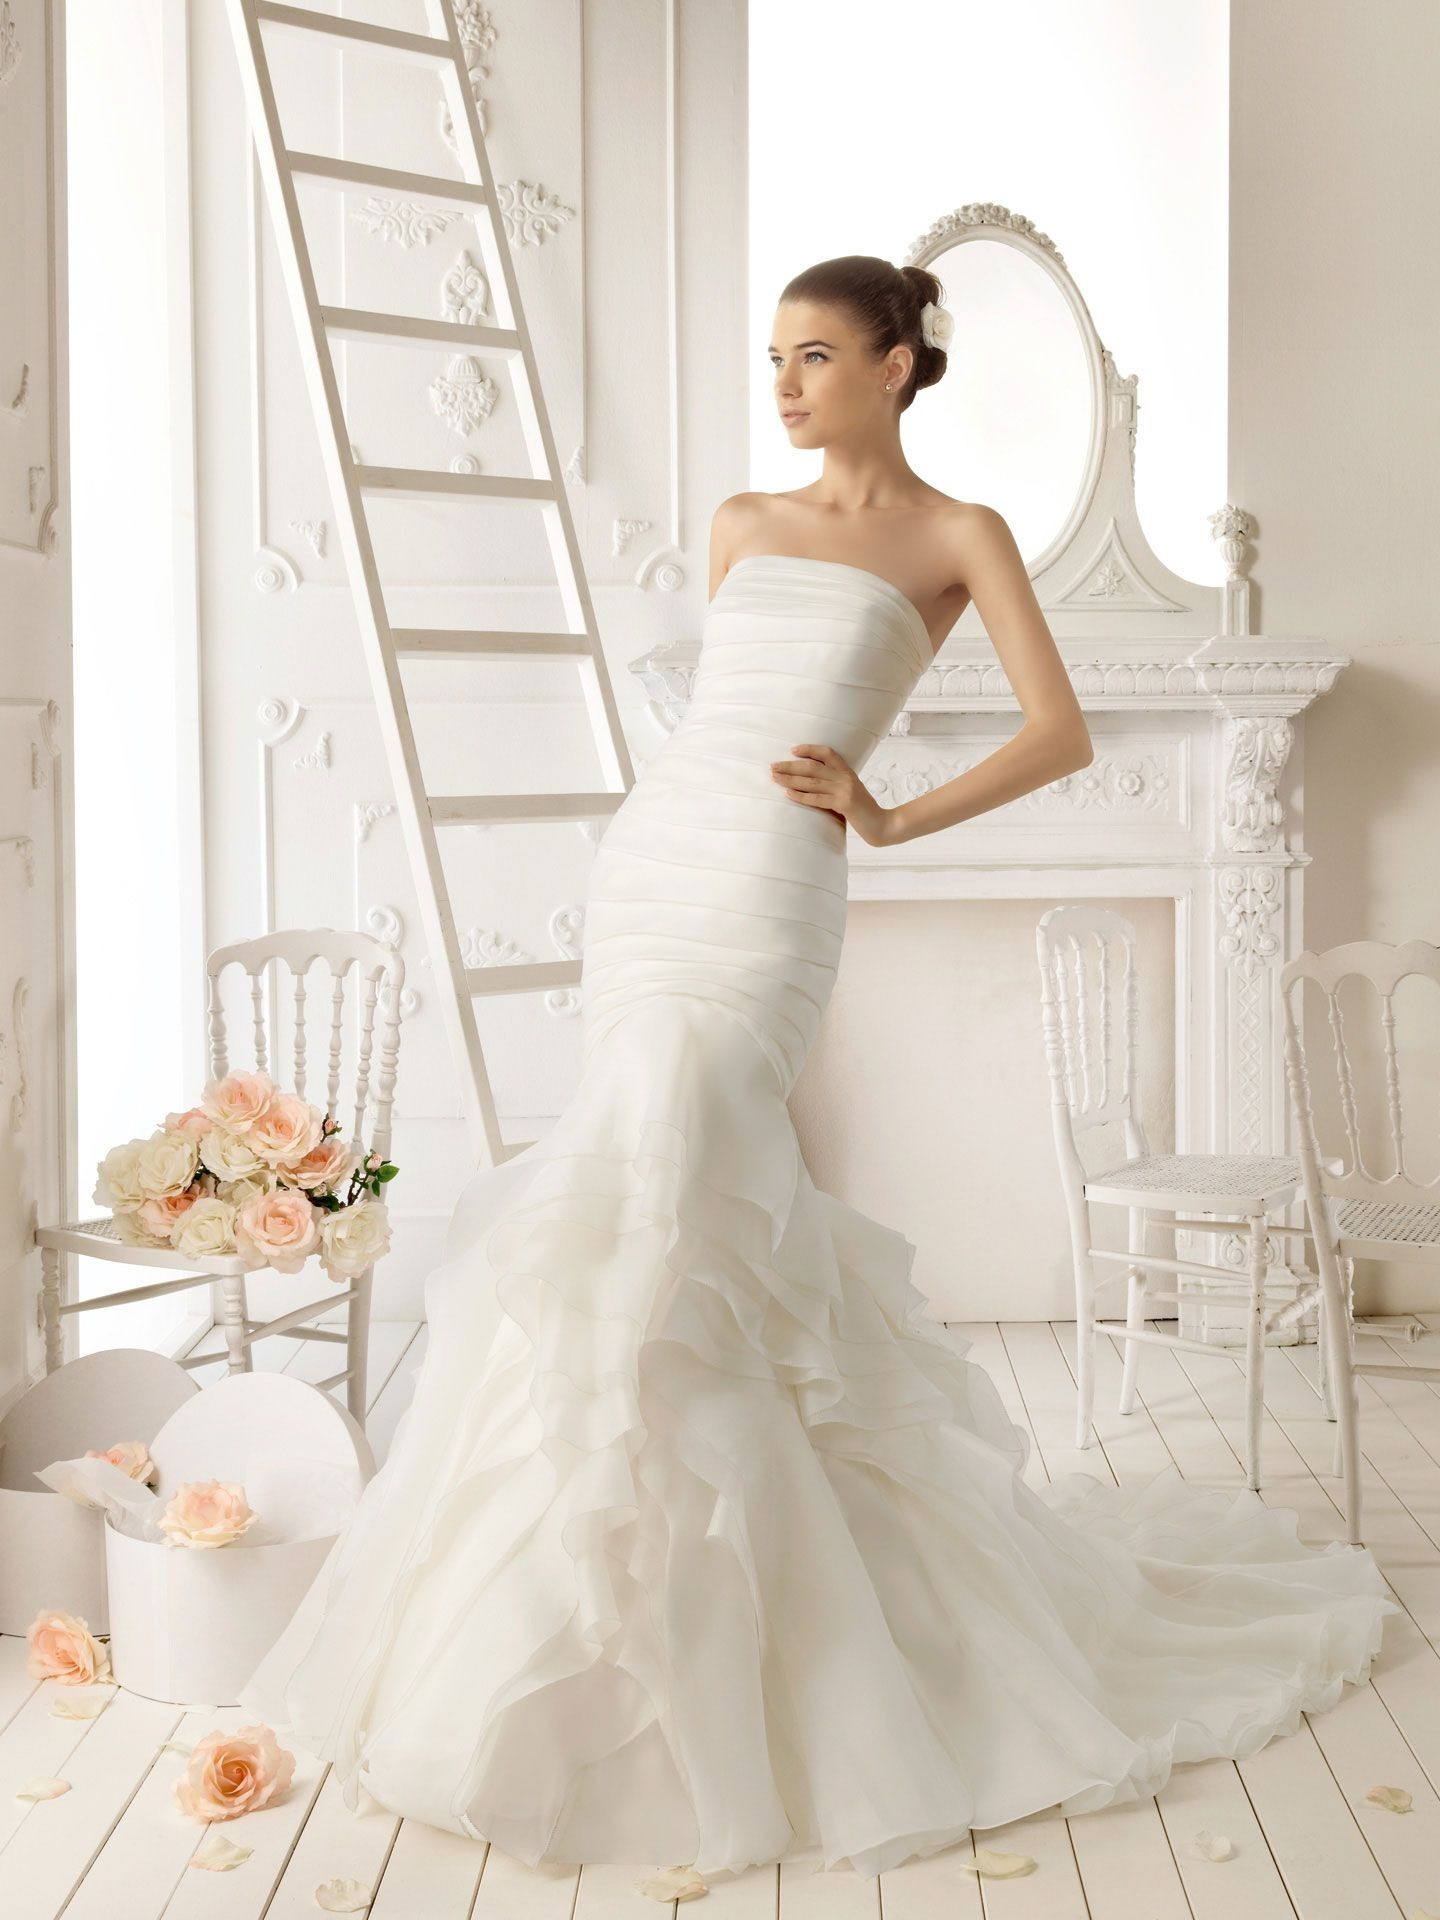 Amazing Mermaid Wedding Dresses 2013 (14)